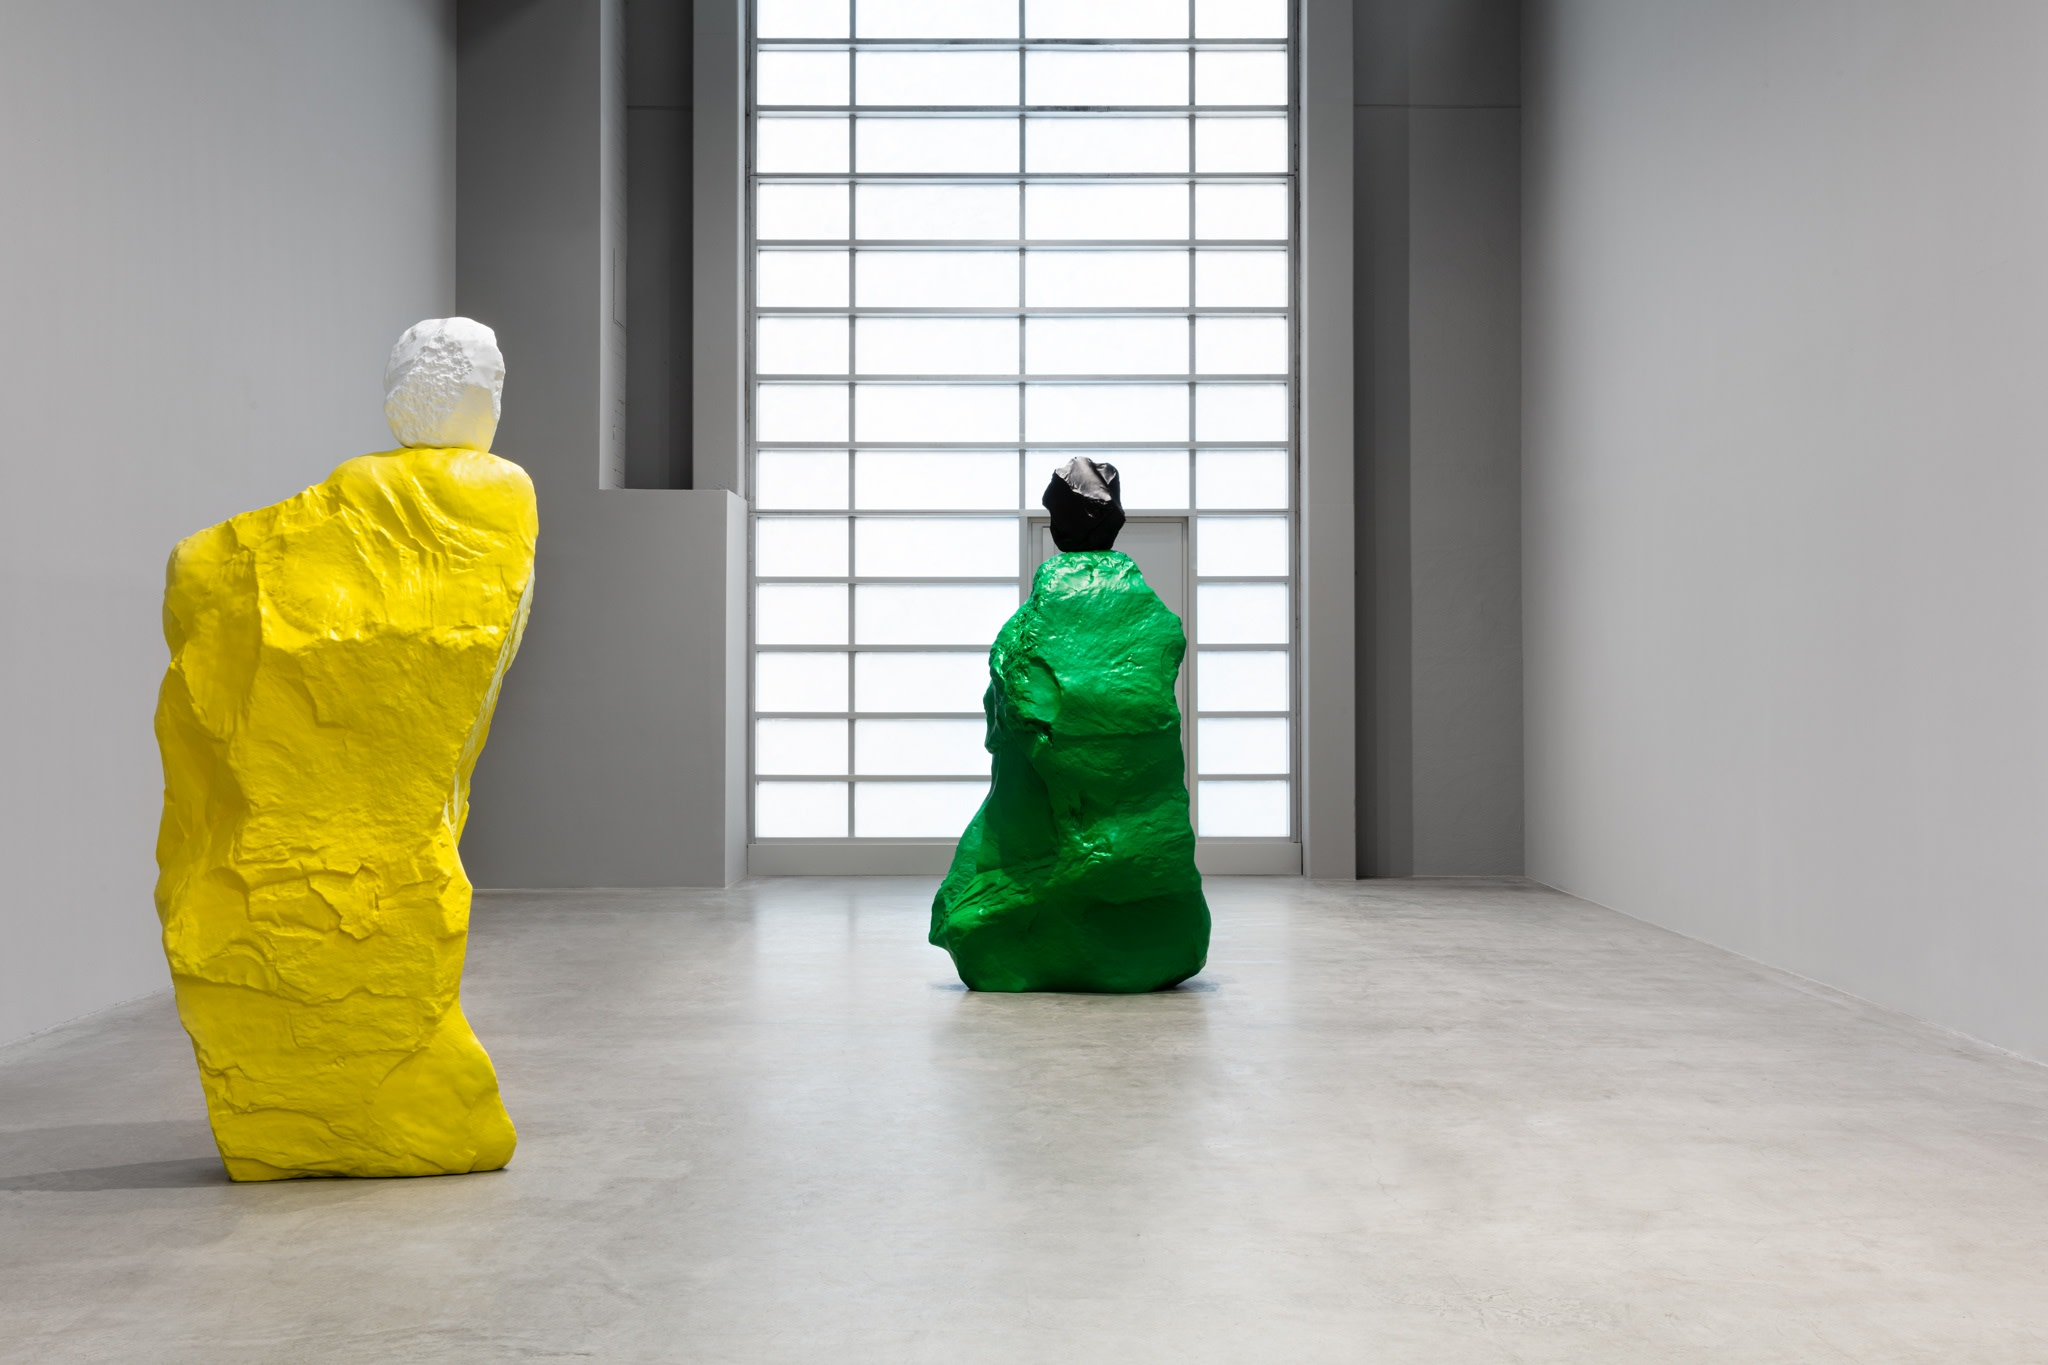 Exhibition view: Ugo Rondinone, nuns + monks, Esther Schipper, Berlin, 2020. Photo © Andrea Rossetti